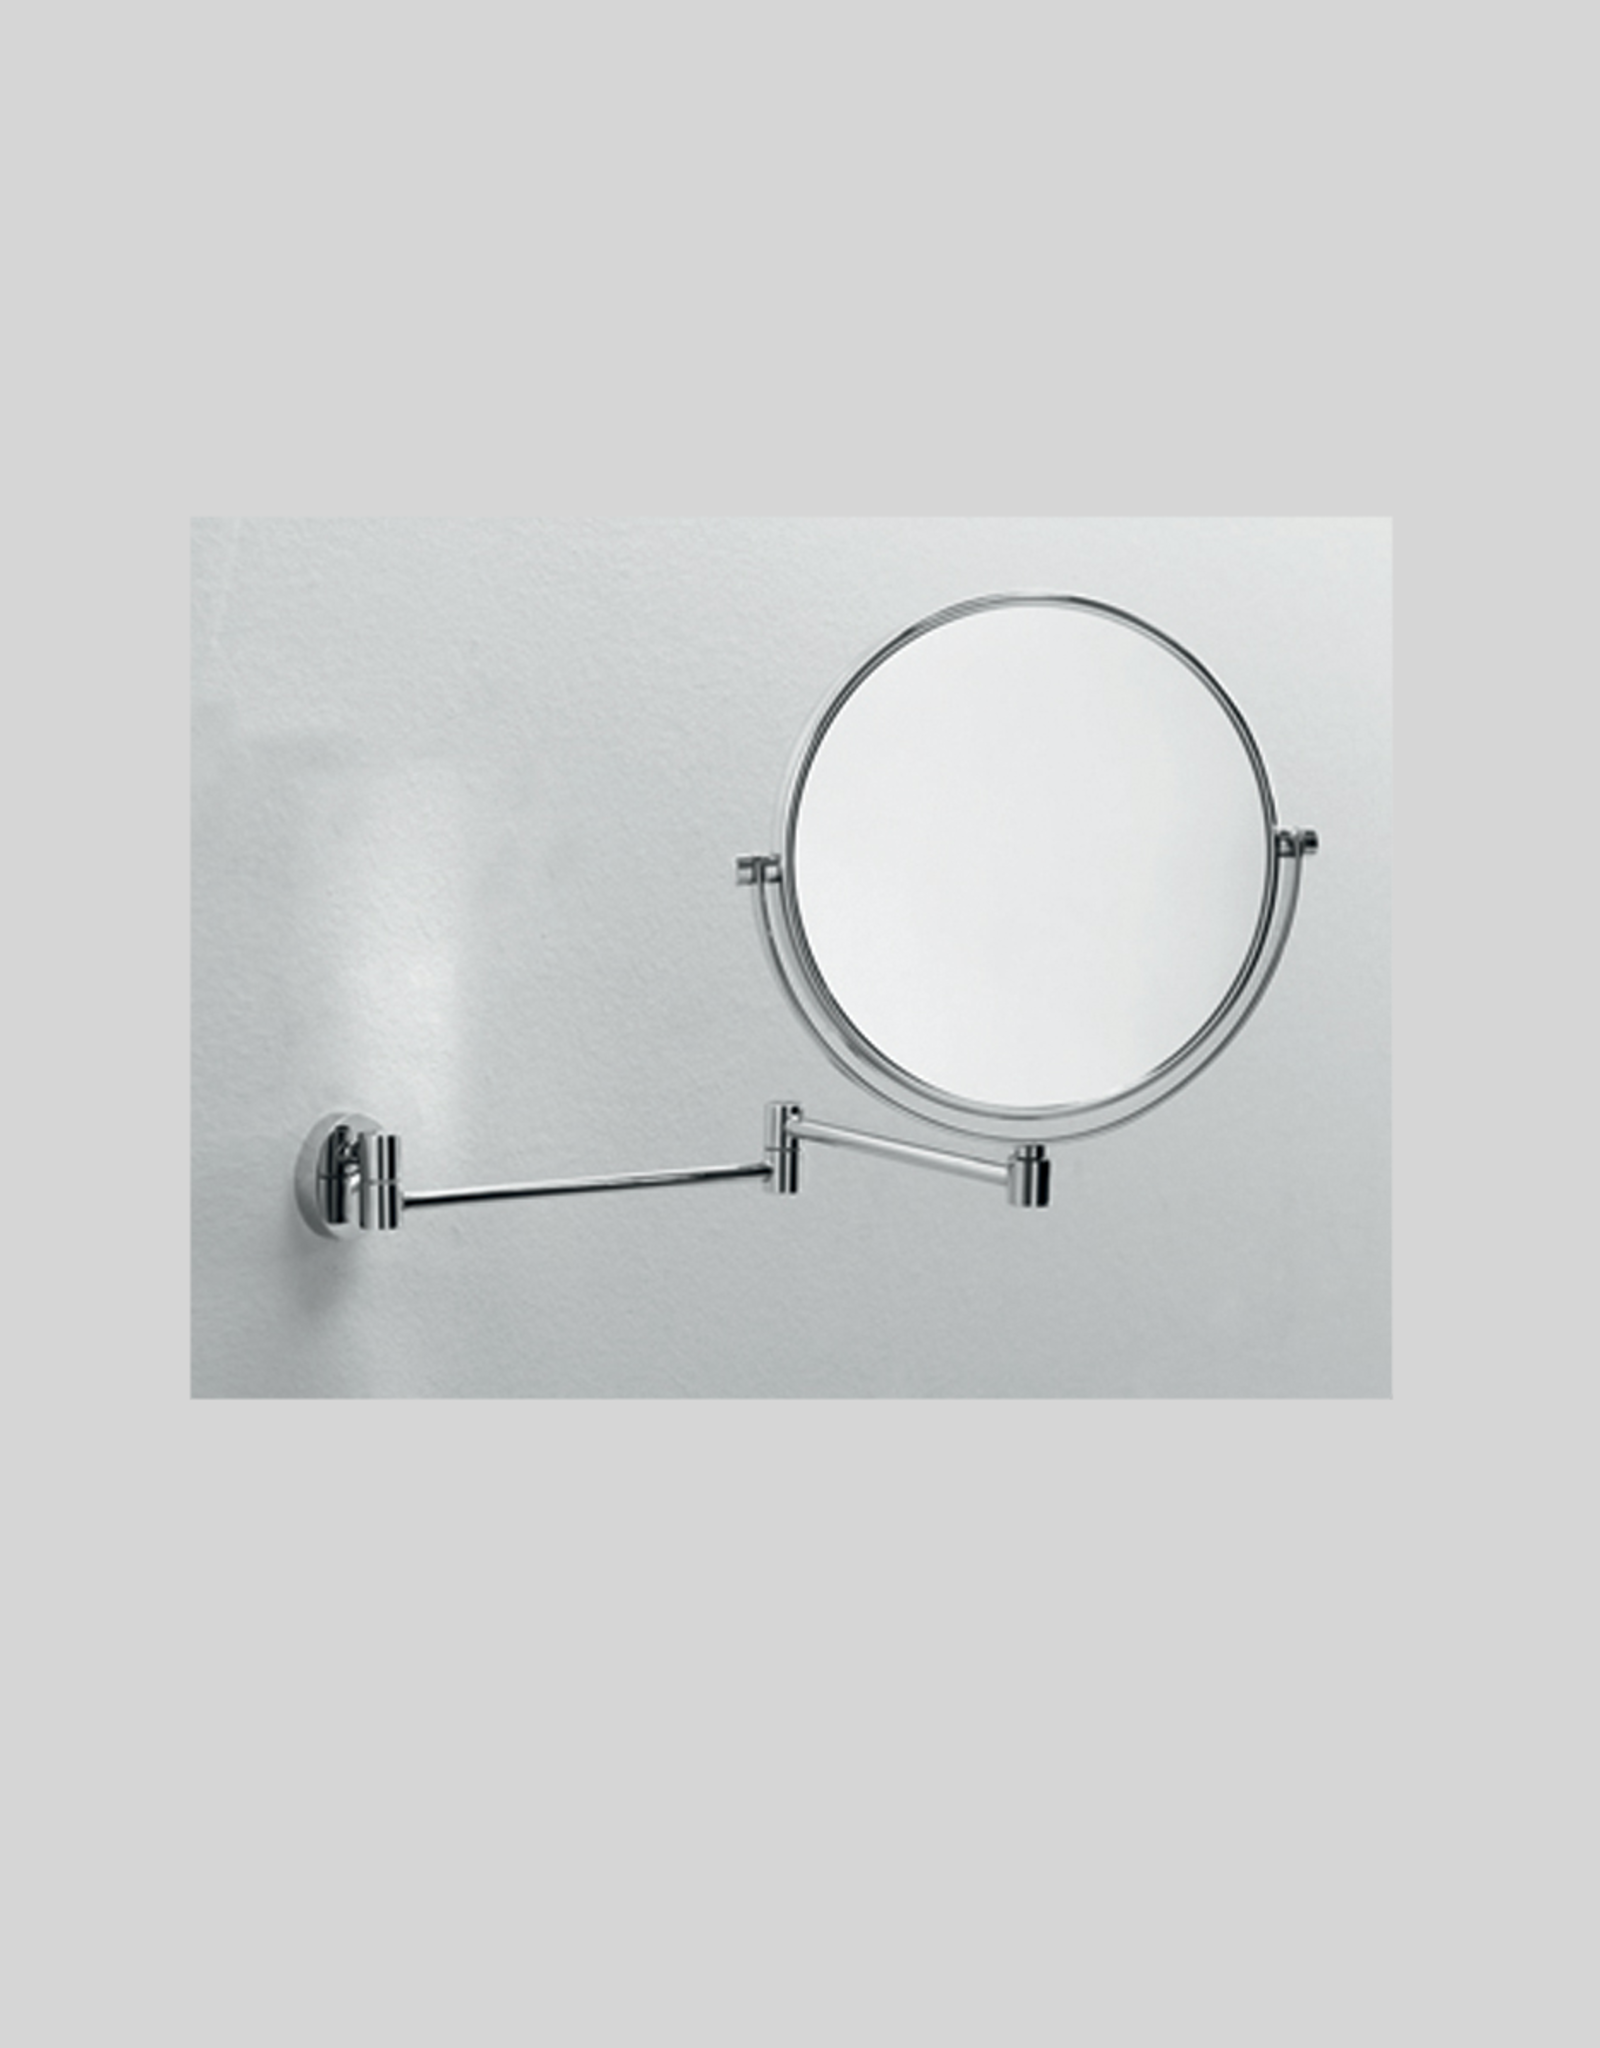 Mevedo magnifying mirror (3x) with flexible wall arm - outlet